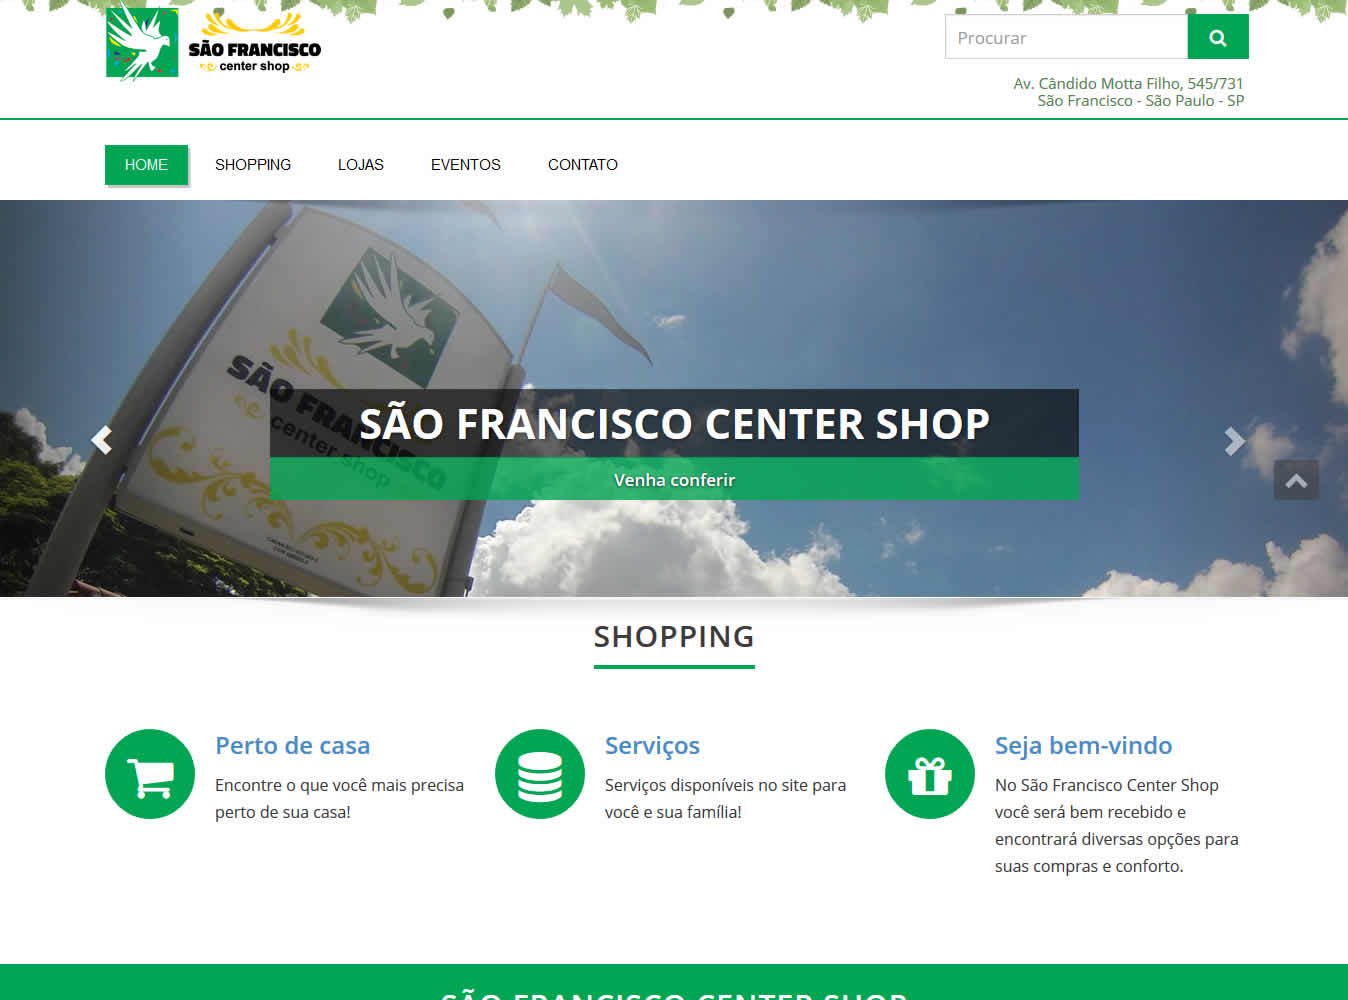 São Francisco Center Shop